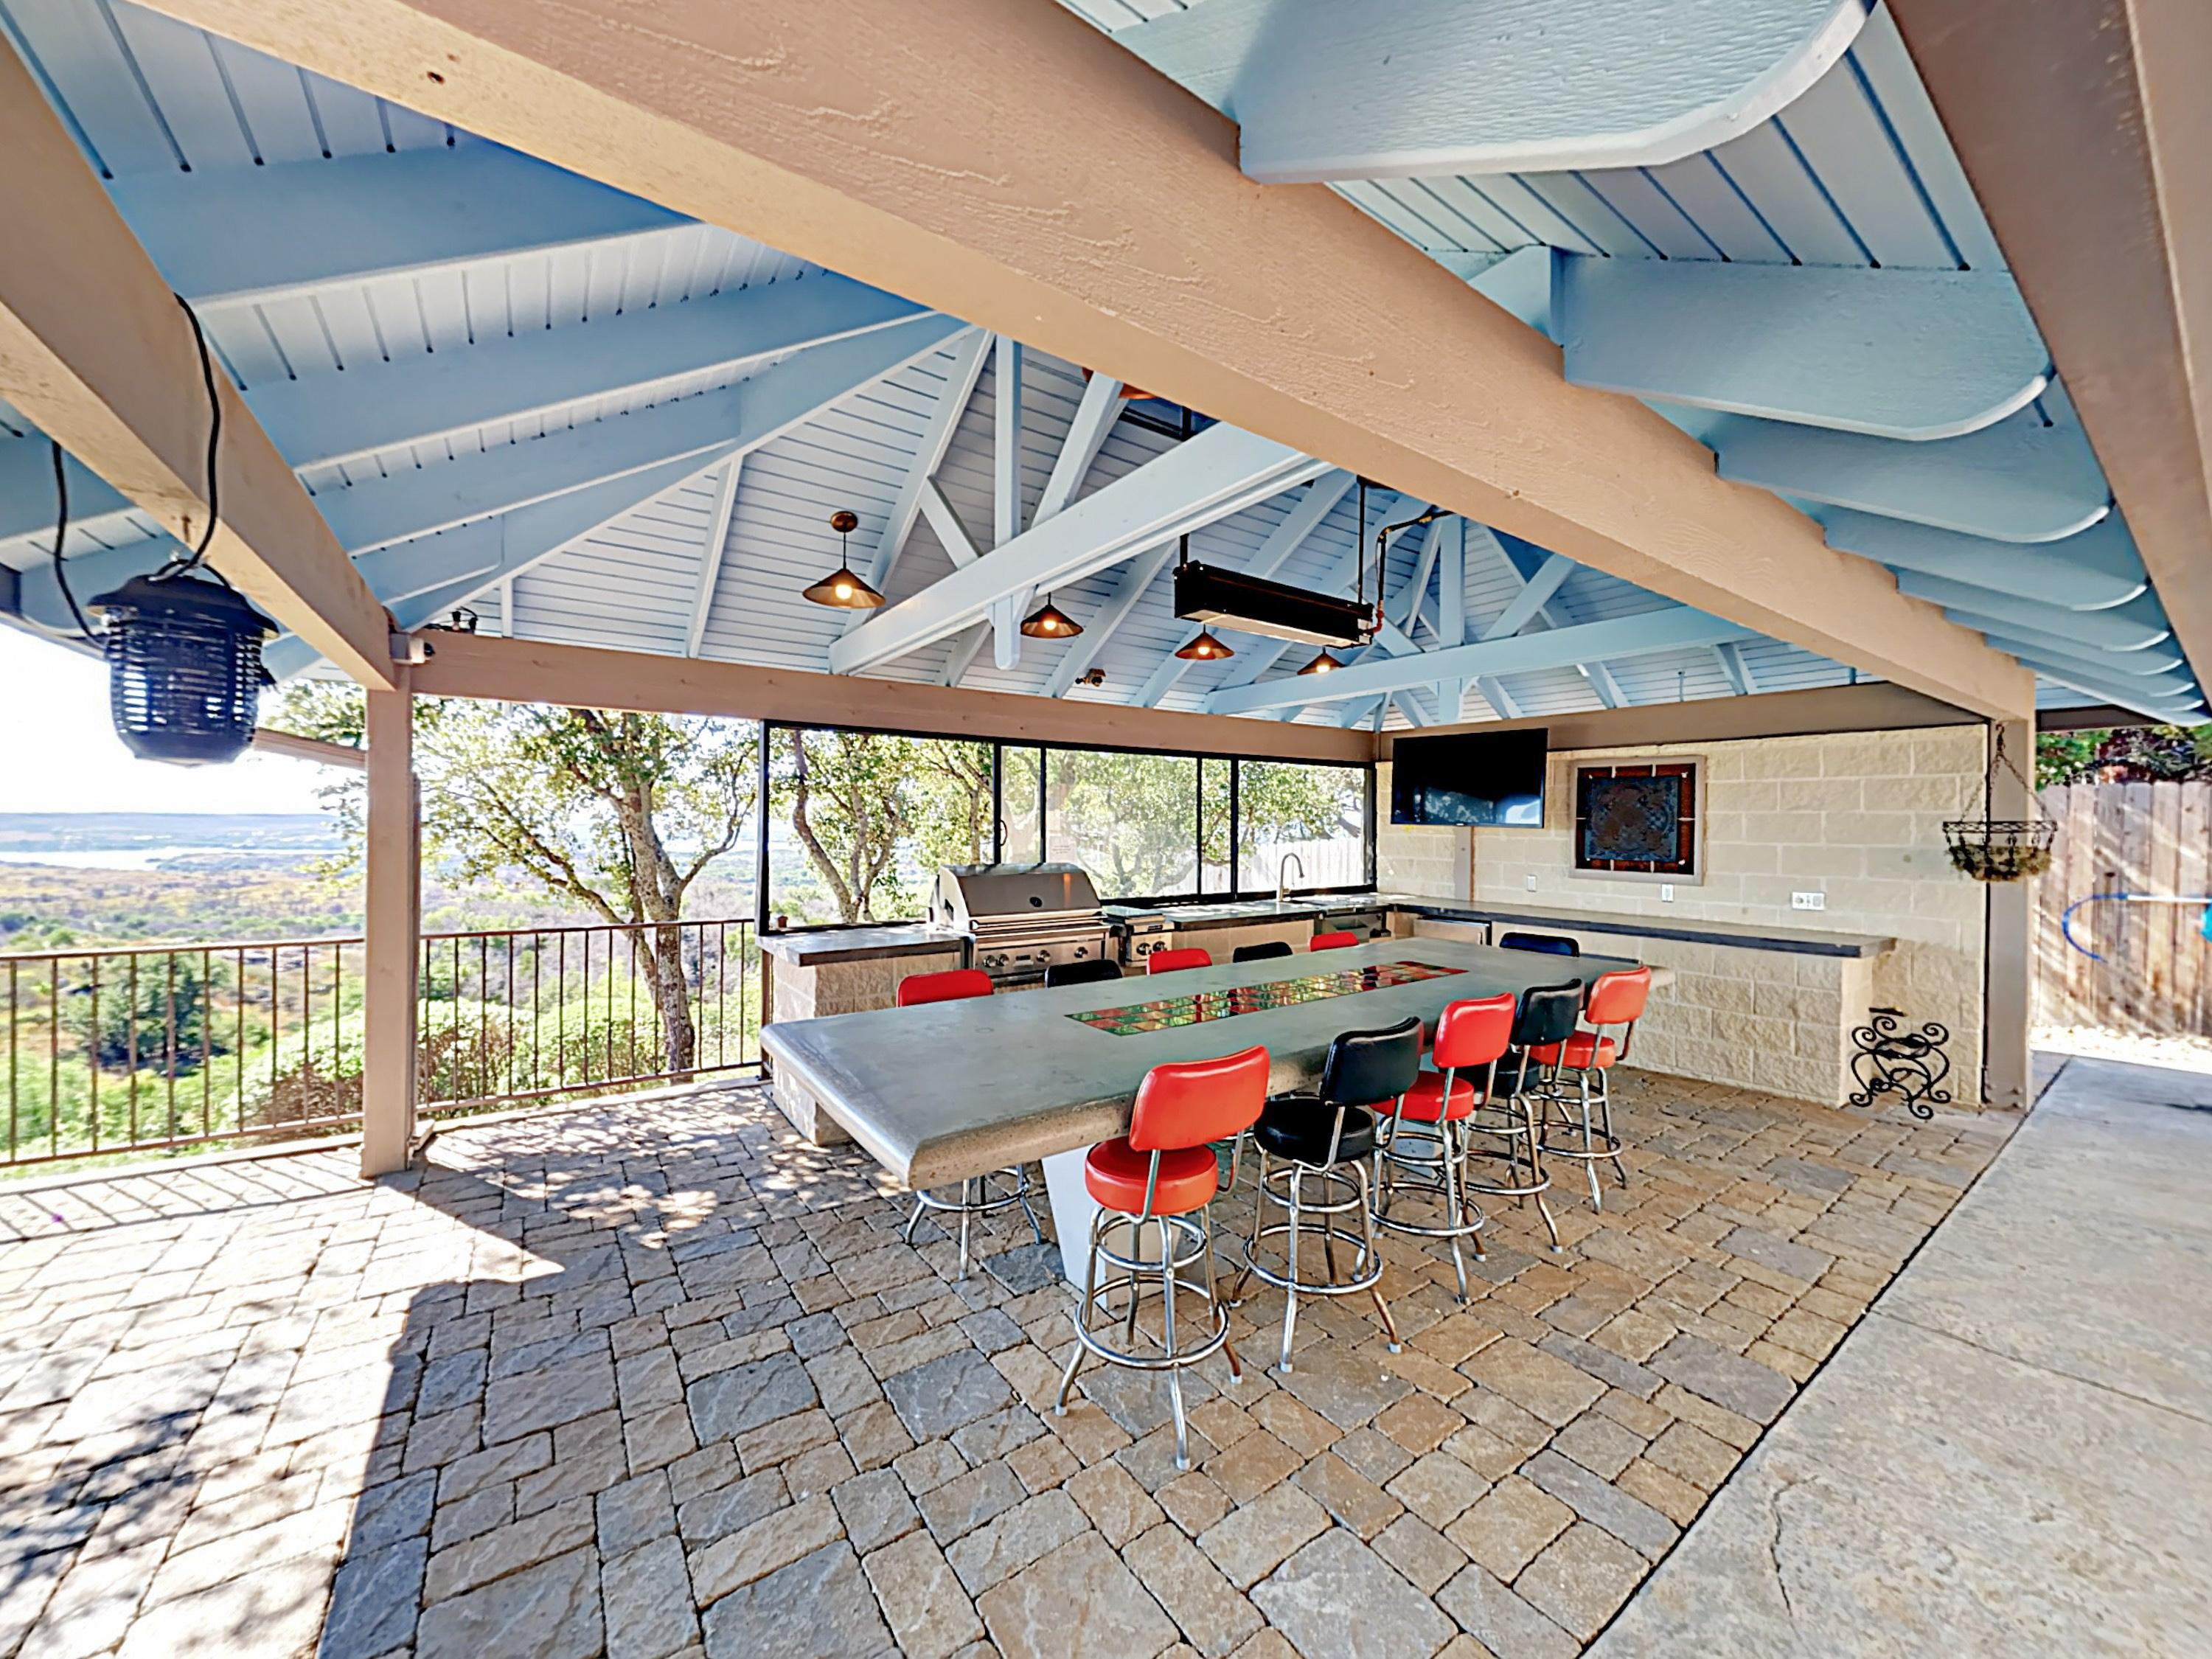 "This impressive outdoor space features a stainless steel gas grill, double burner, mini fridge, 11-seater dining table, and 55"" flat screen TV."